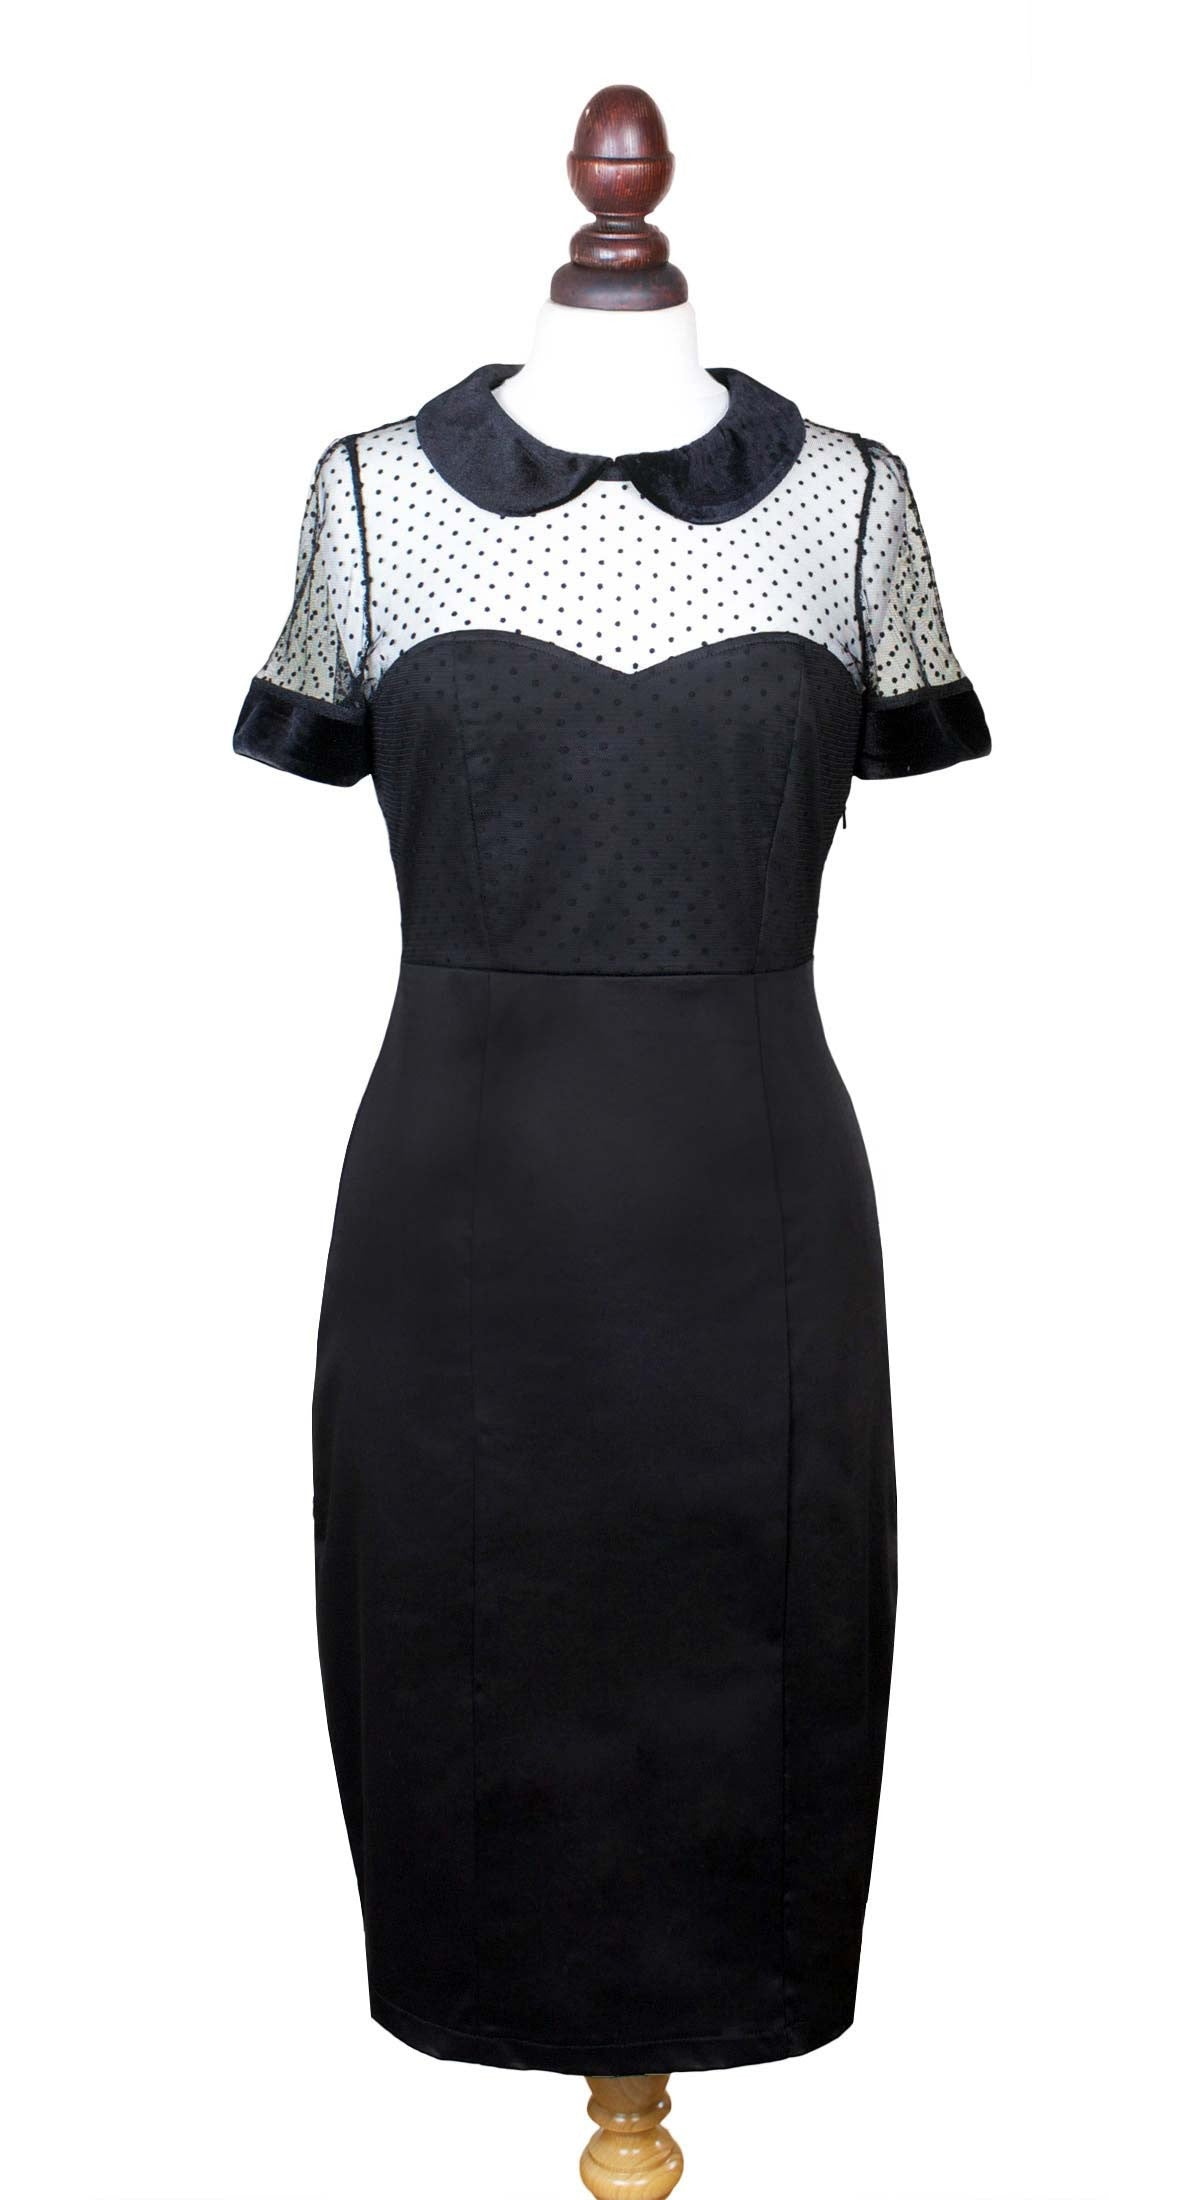 Adele Black Peter Pan Collar Dress - Weekend Doll